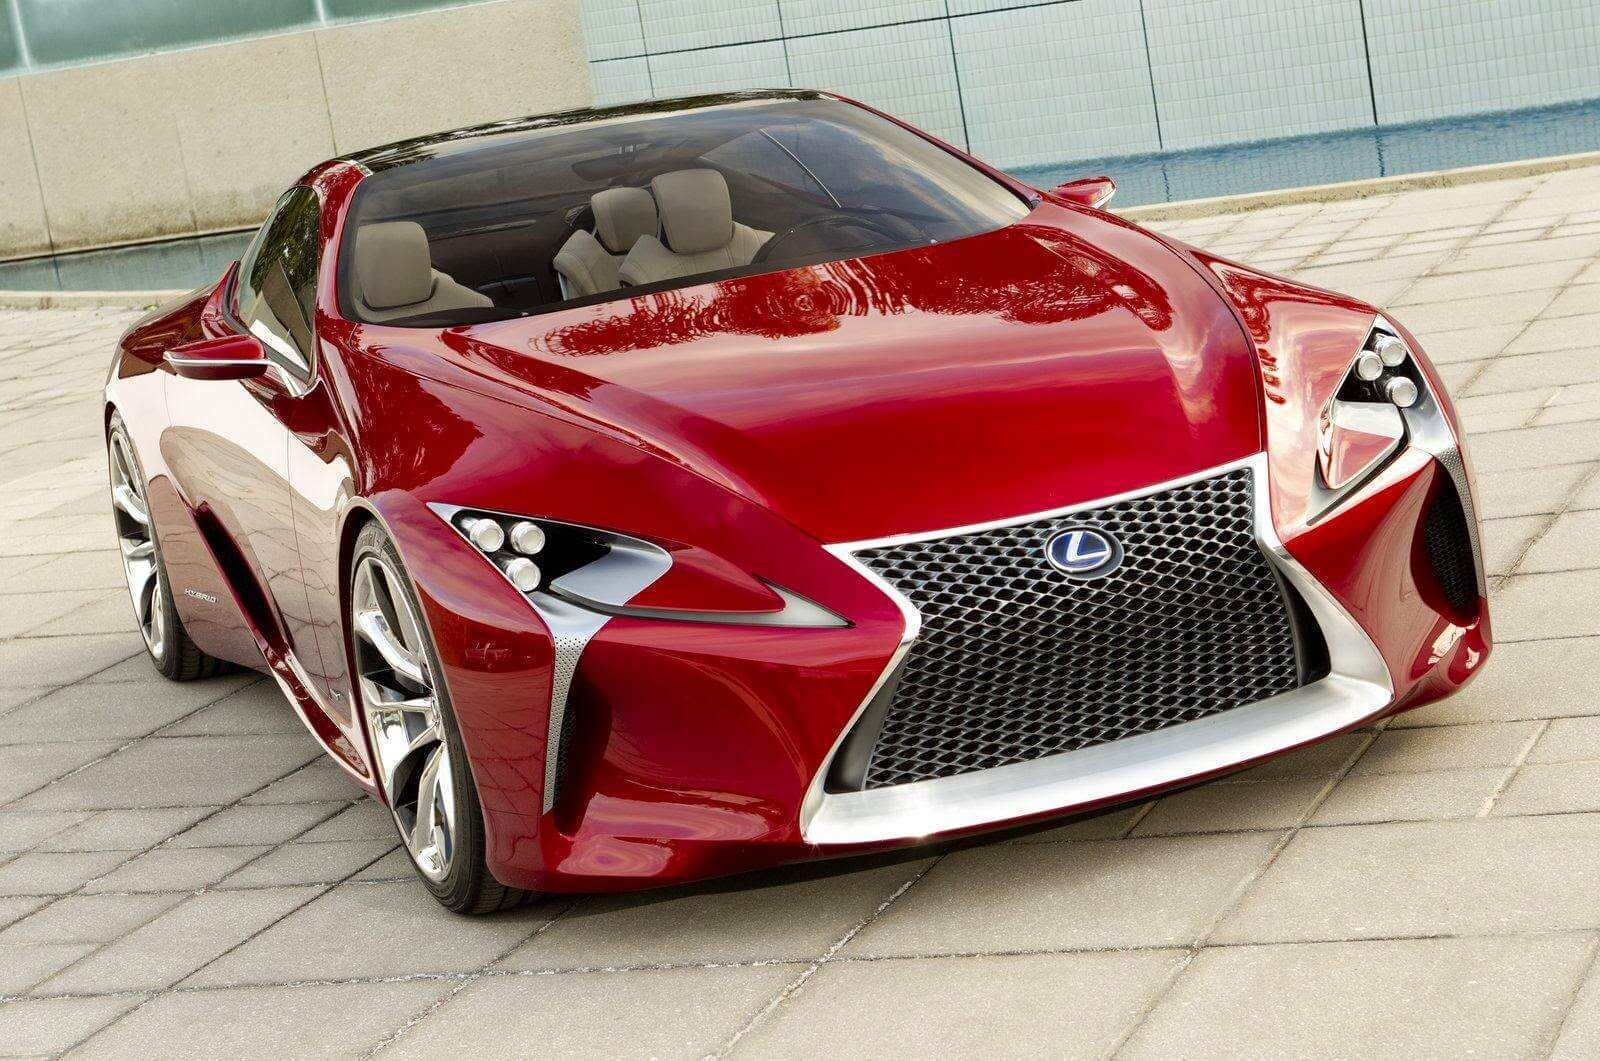 41 Gallery of Lexus 2020 Convertible New Review by Lexus 2020 Convertible